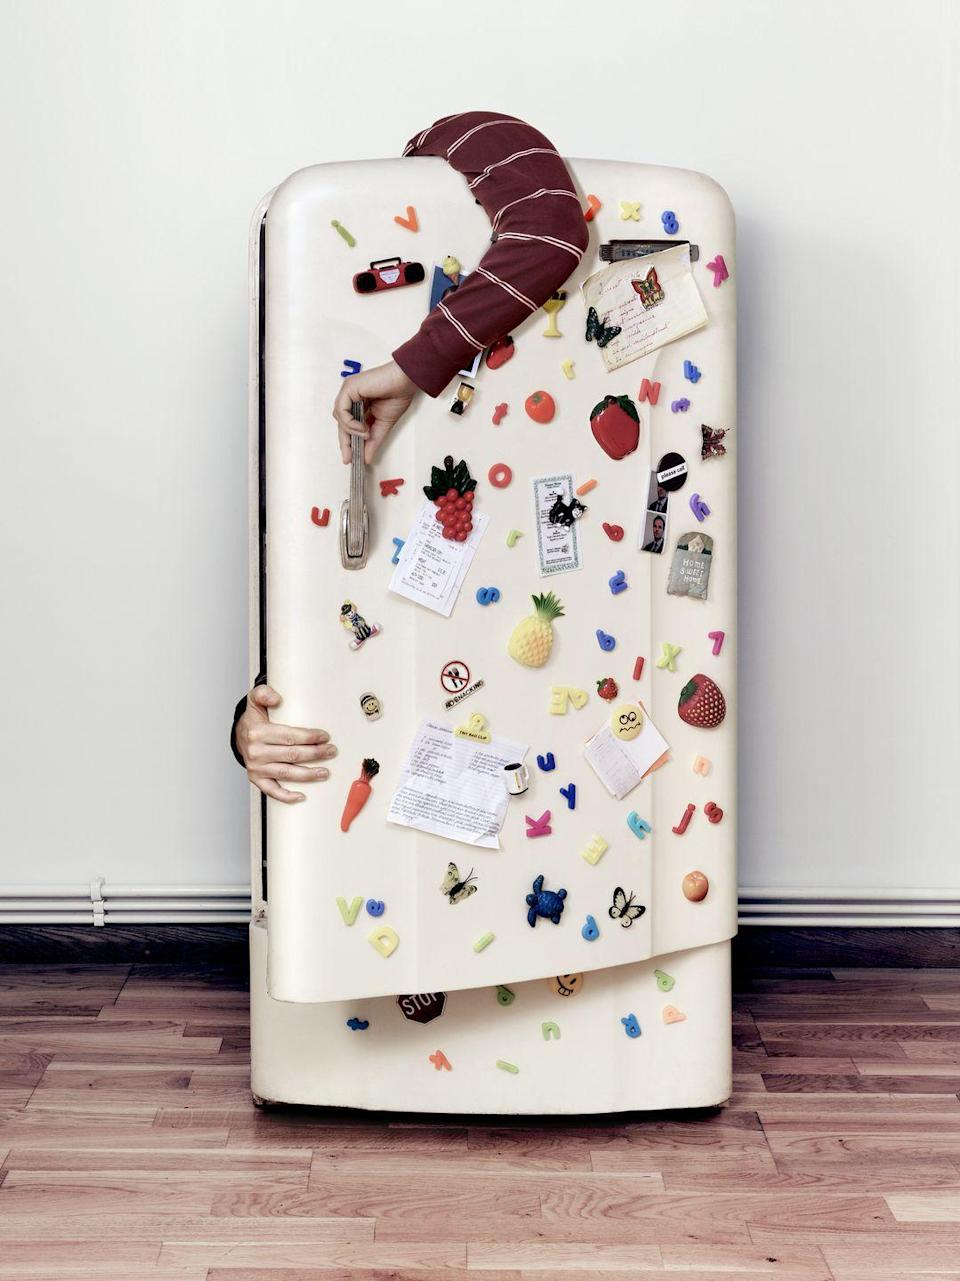 <p>If you were considering cozying up to sleep on top of a refrigerator—an outdoor refrigerator, no less—you can forget about it, thanks to a Pennsylvania law that outlaws it.</p>